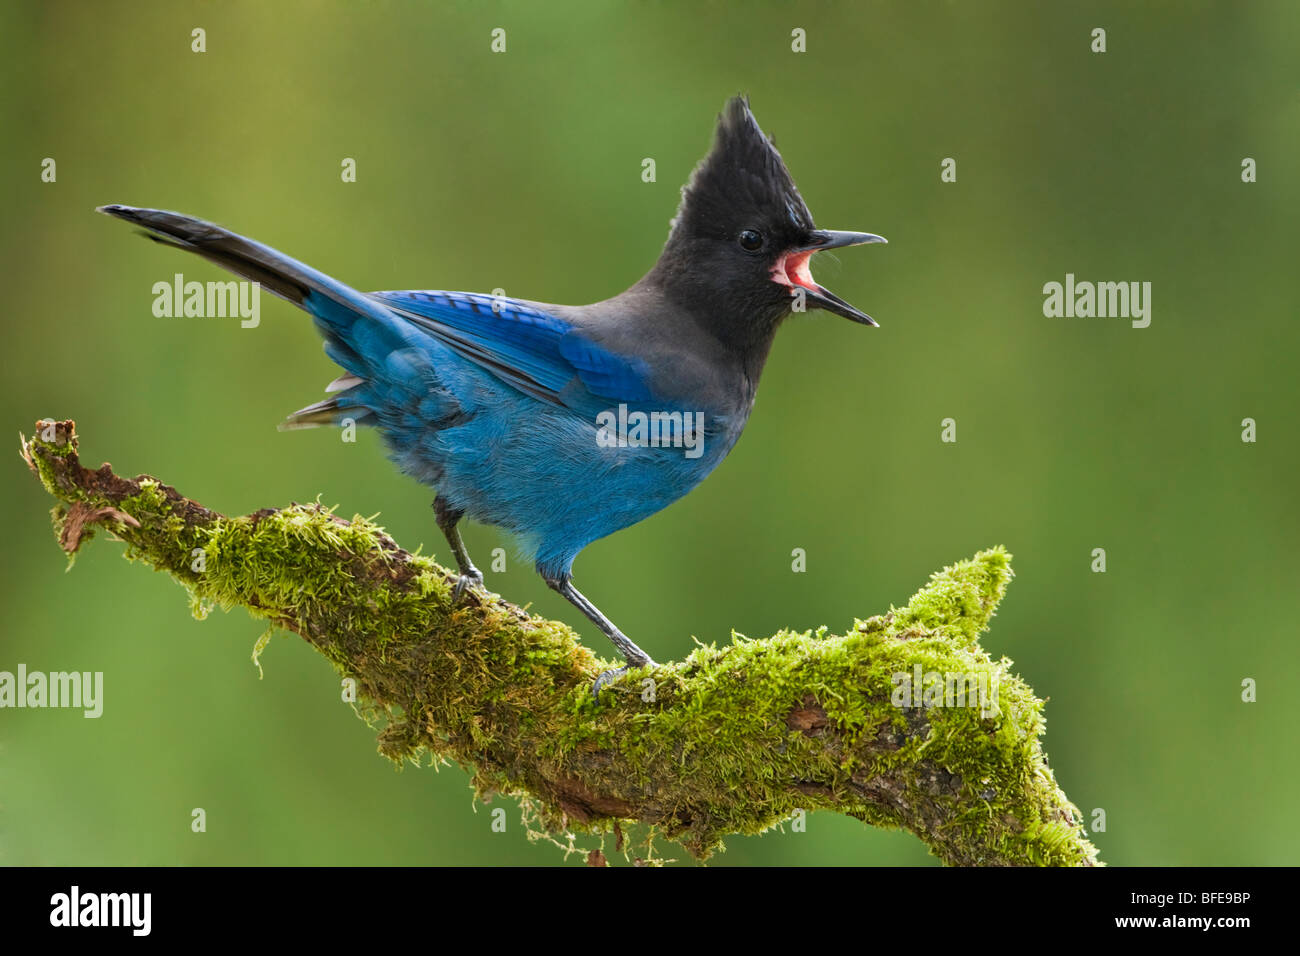 A Steller's Jay (Cyanocitta stelleri) perches on a mossy branch in Victoria, Vancouver Island, British Columbia, - Stock Image